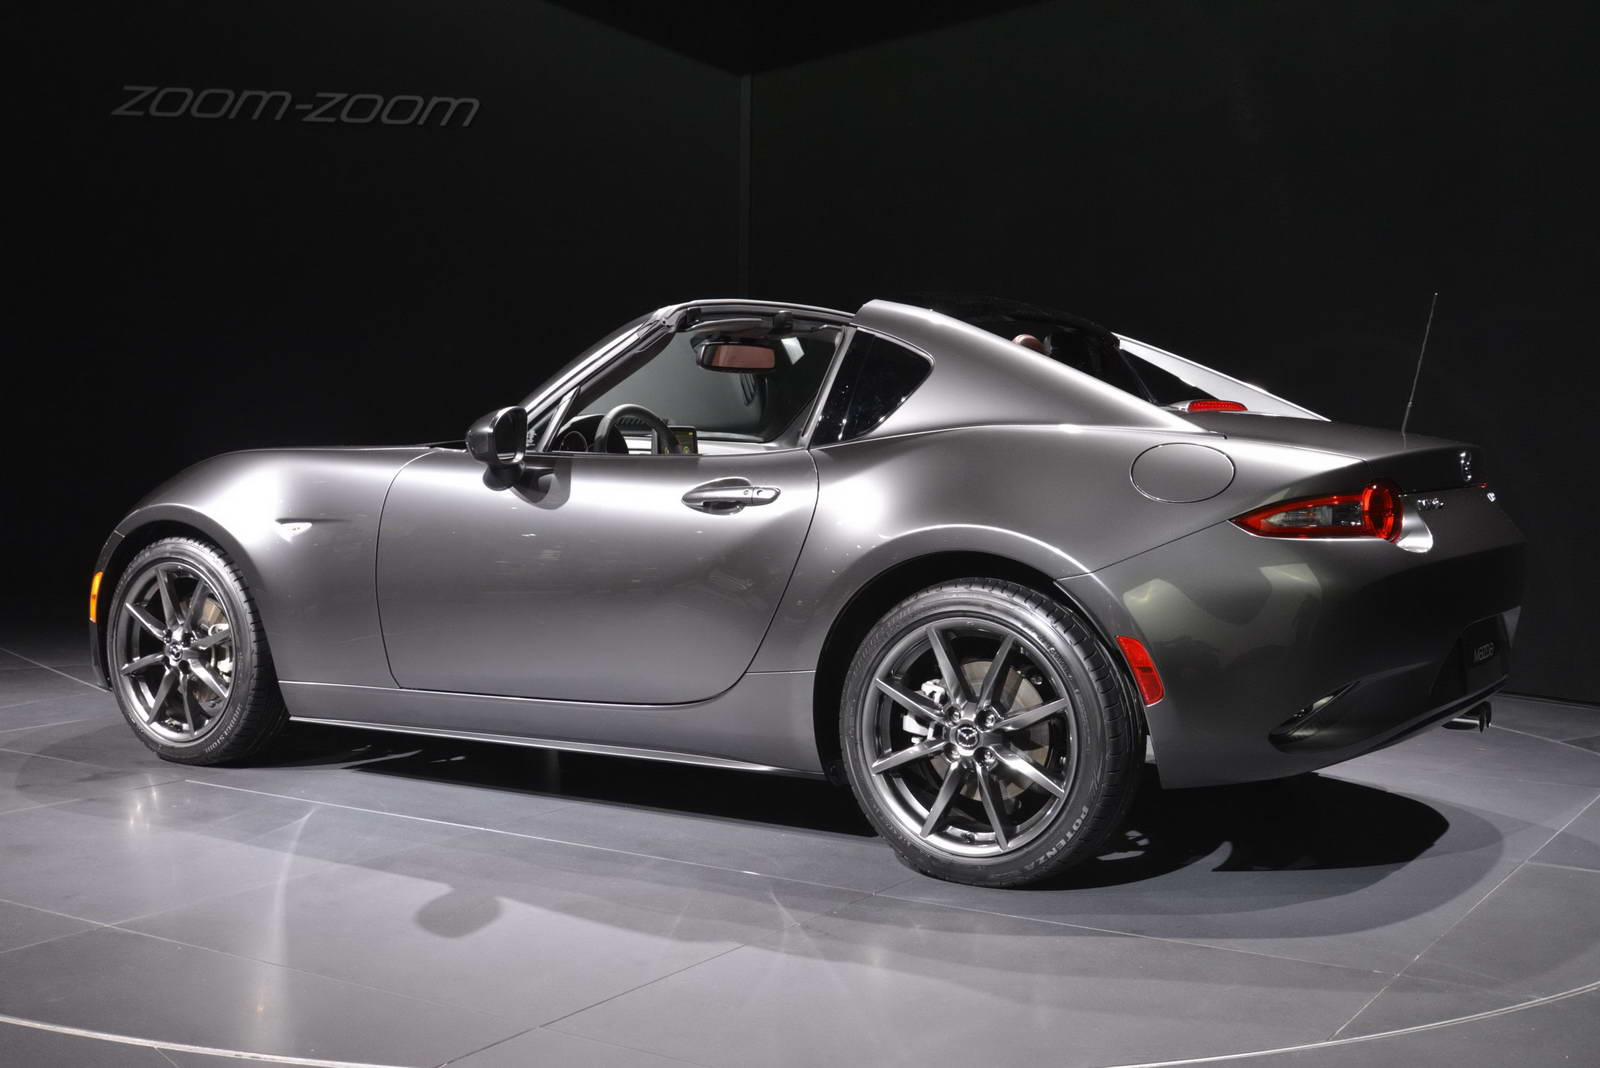 2017 mazda mx 5 gets hard for nyc calls itself the rf. Black Bedroom Furniture Sets. Home Design Ideas